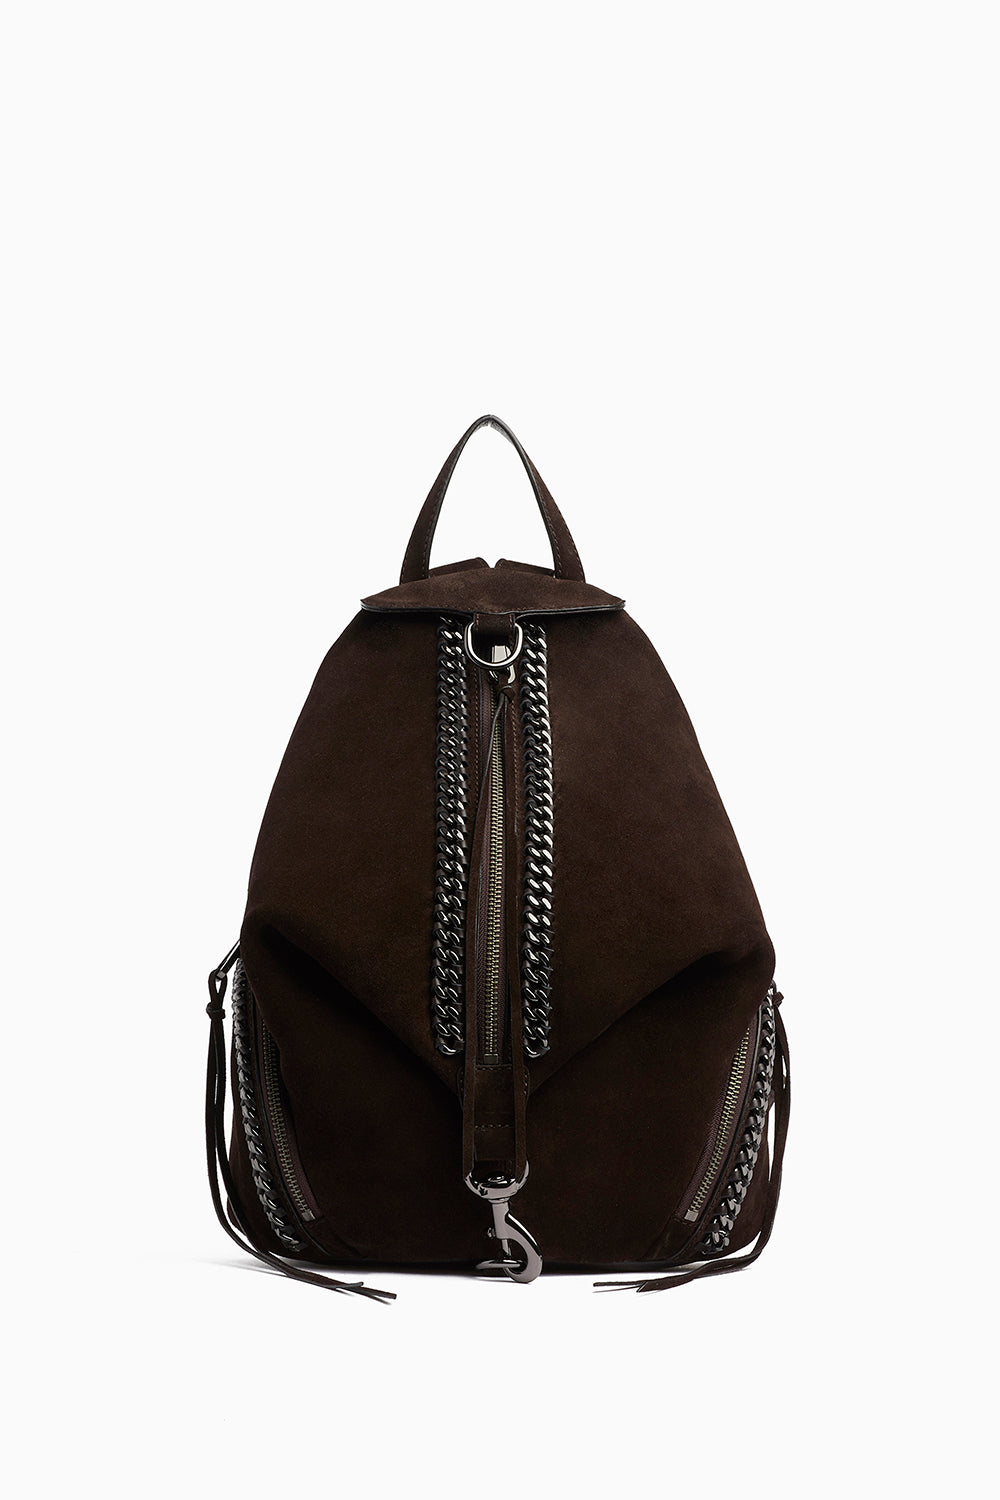 Rebecca-Minkoff Julian Backpack with Chain Inset